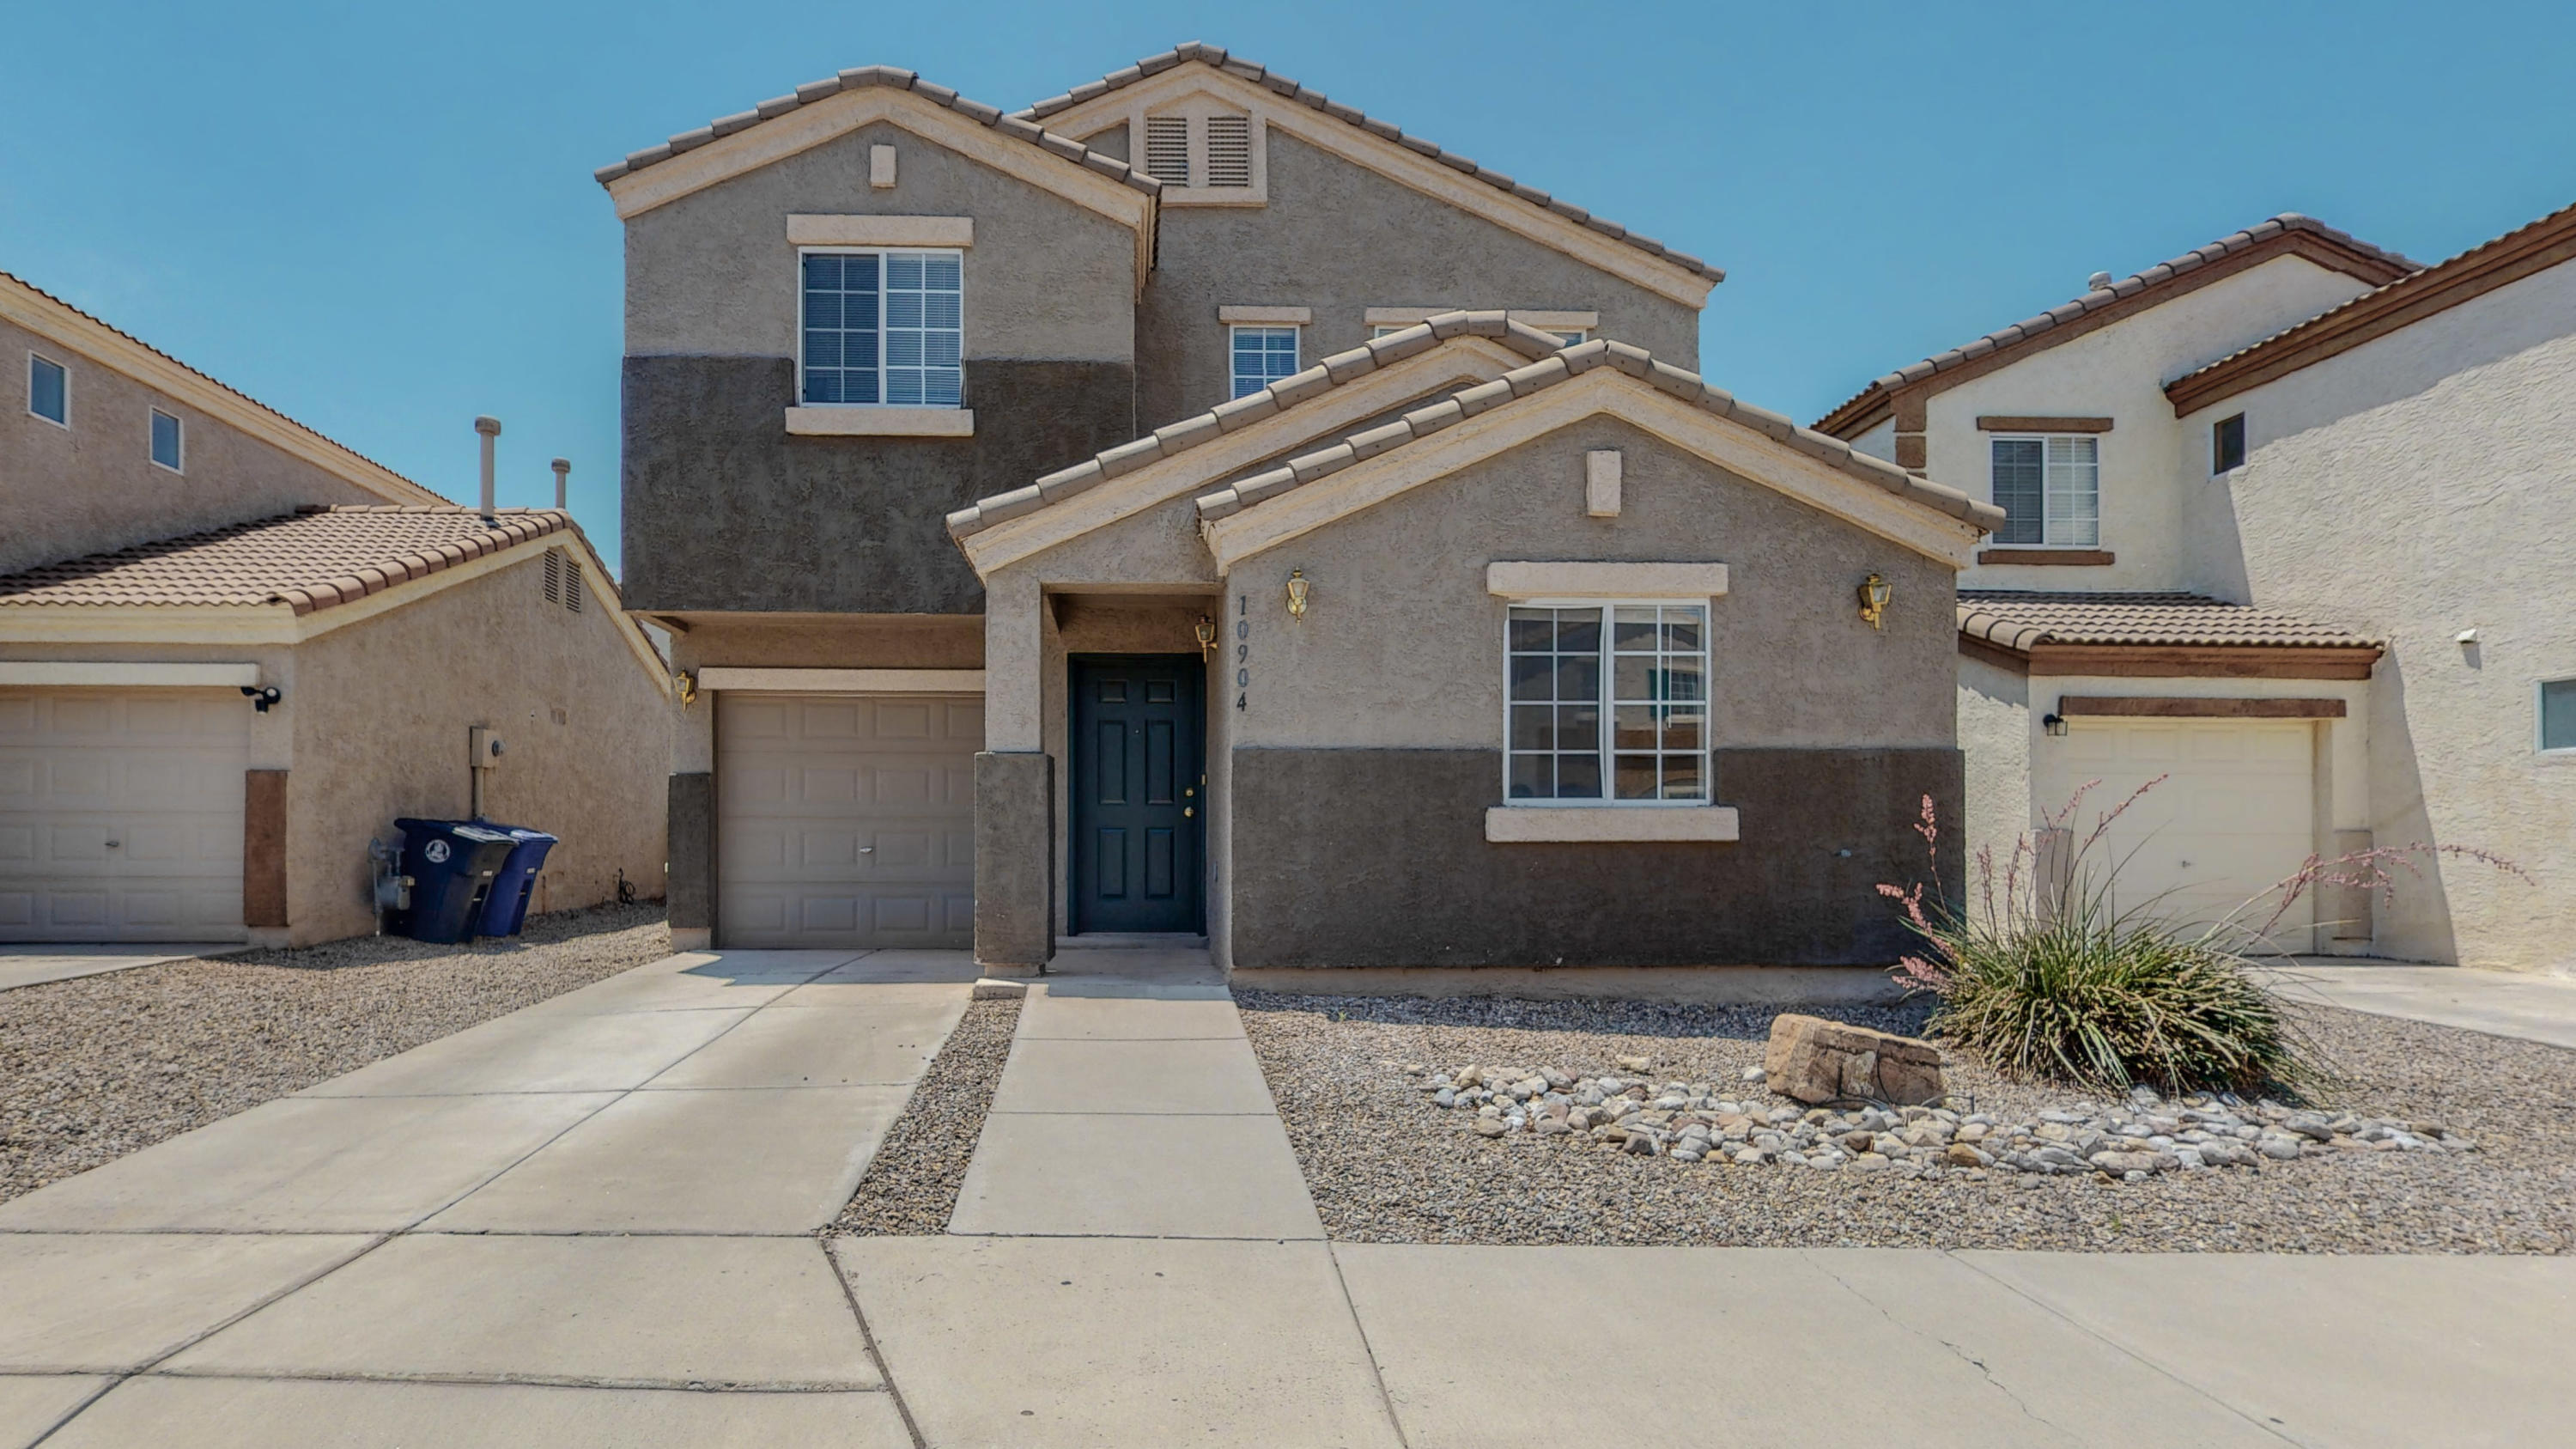 Delightful home located in the Longford Gated Community.  Close to Kirtland AFB, Sandia Nat'l labs as well as many shopping locations.